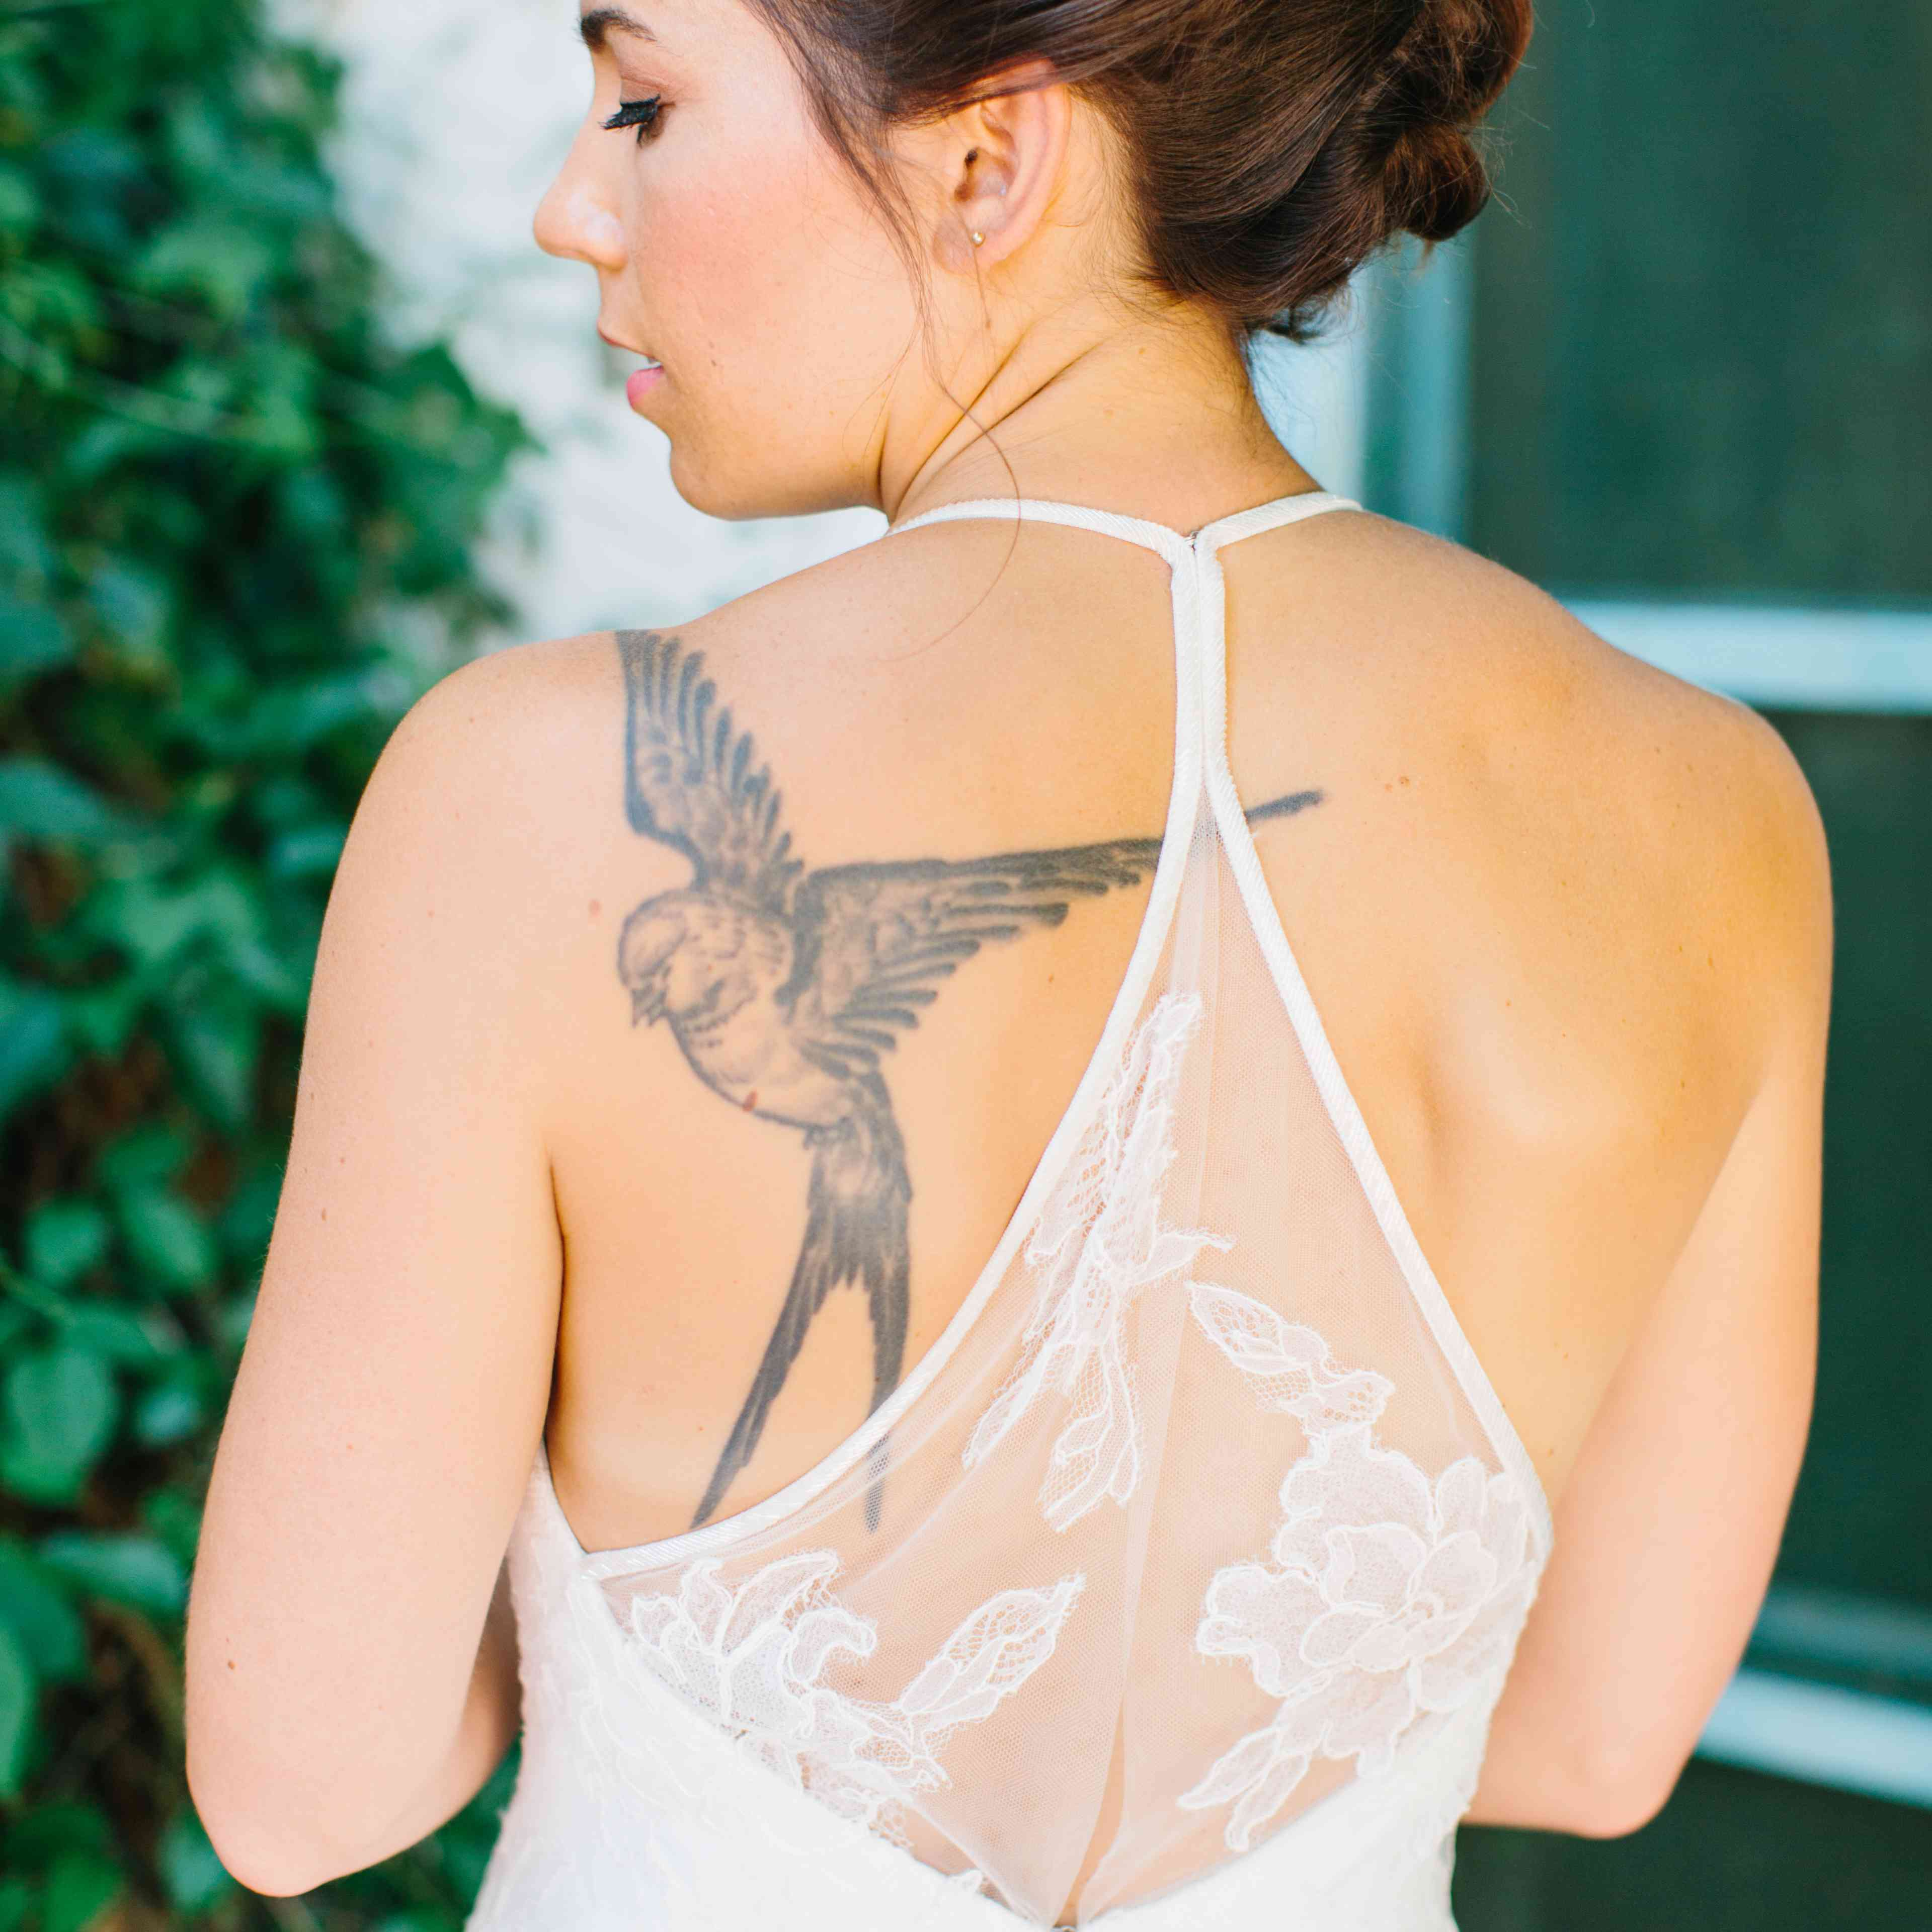 Bride with sparrow tattoo on shoulder